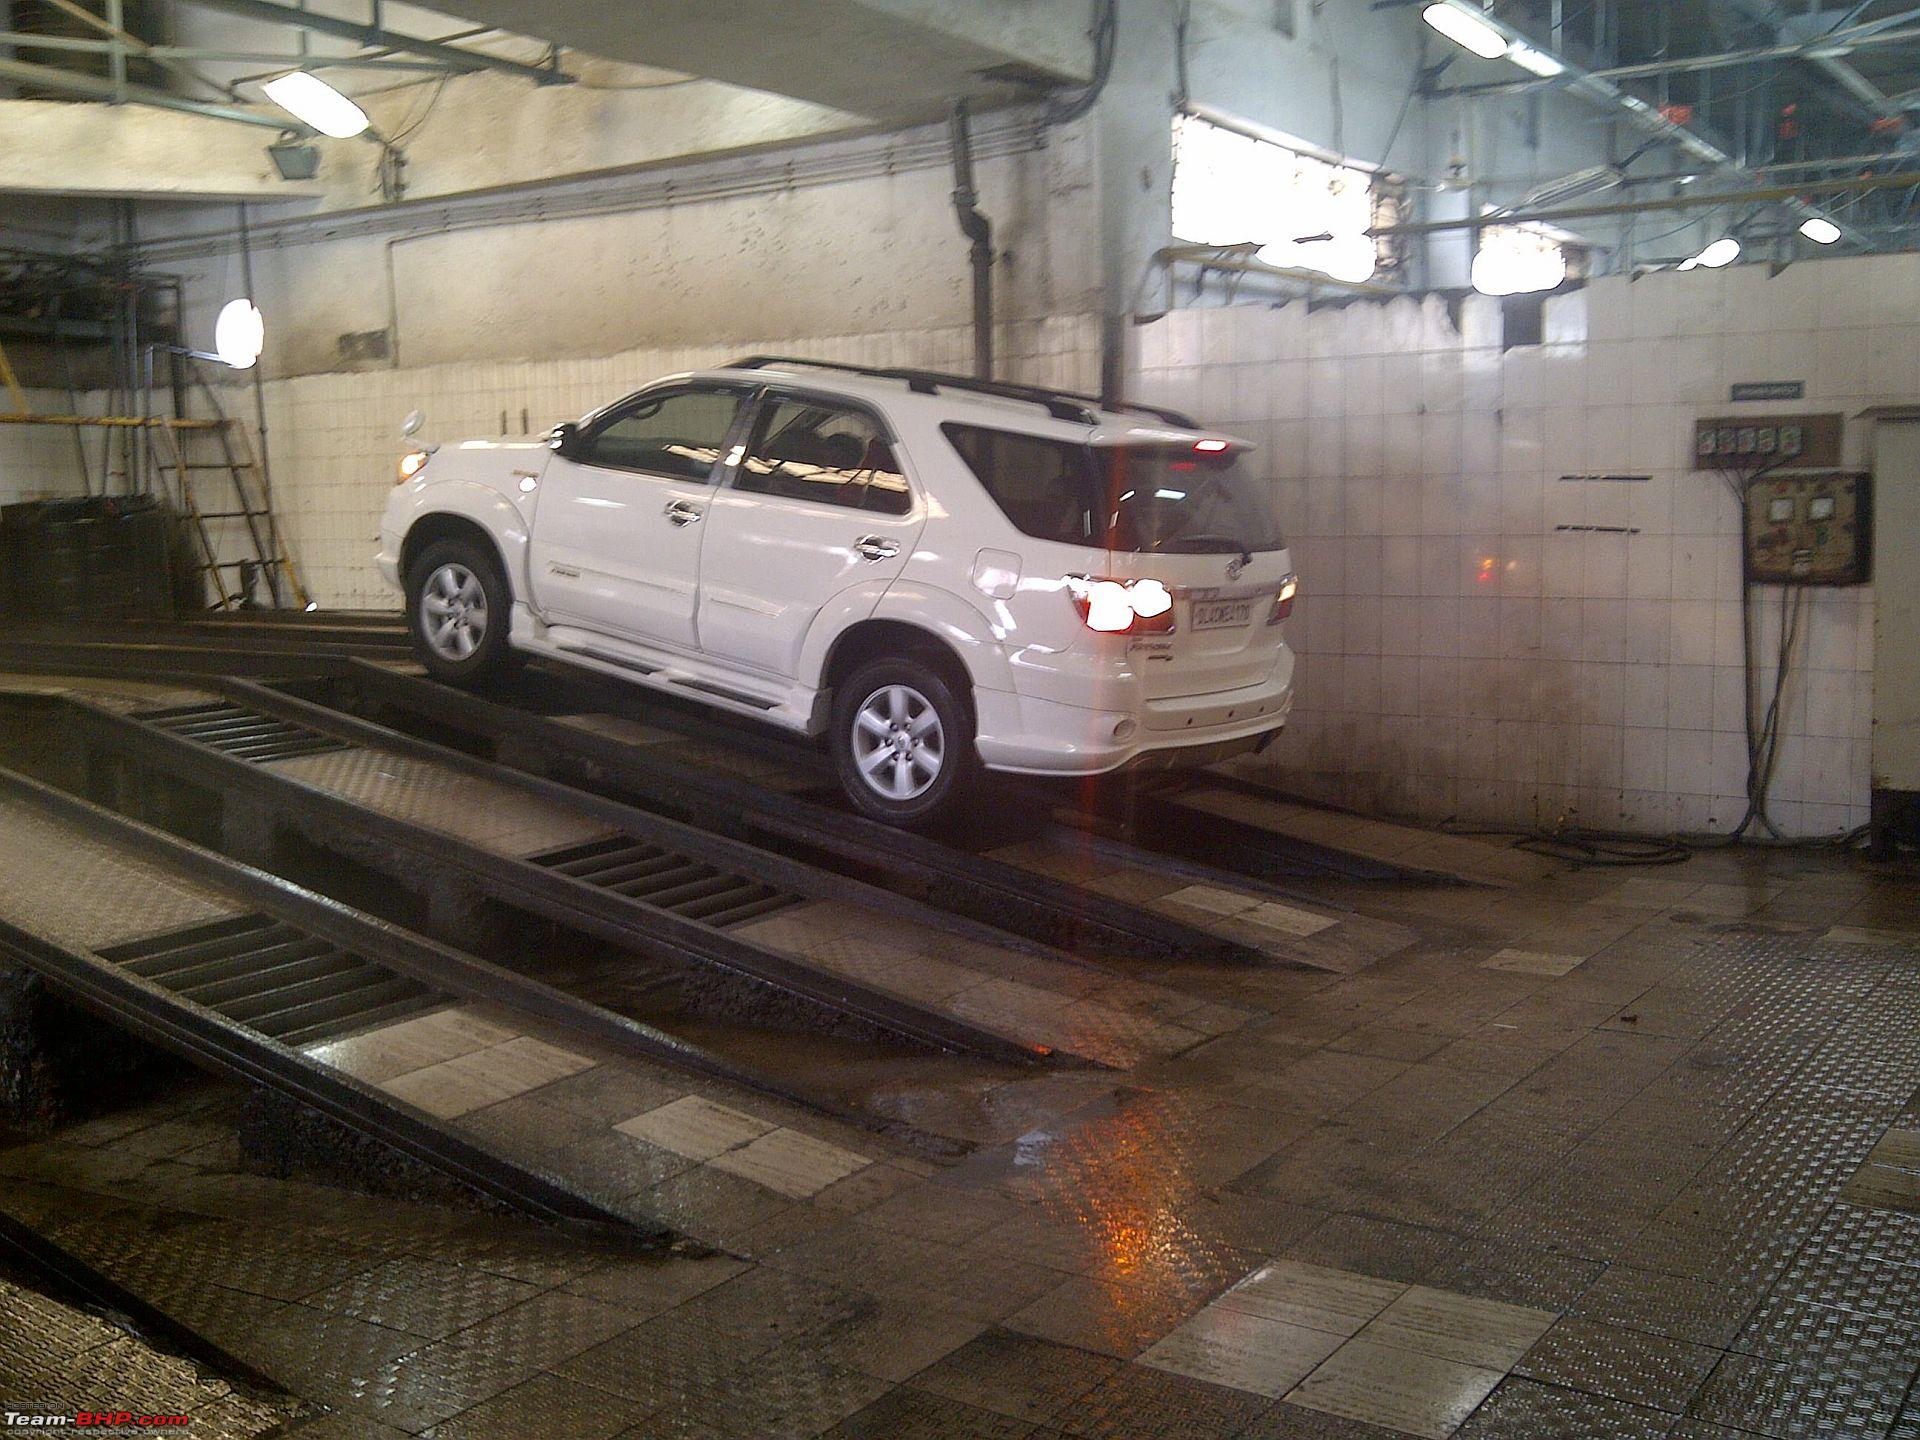 hight resolution of obelix the invincible toyota fortuner 2 00 000 km and going strong